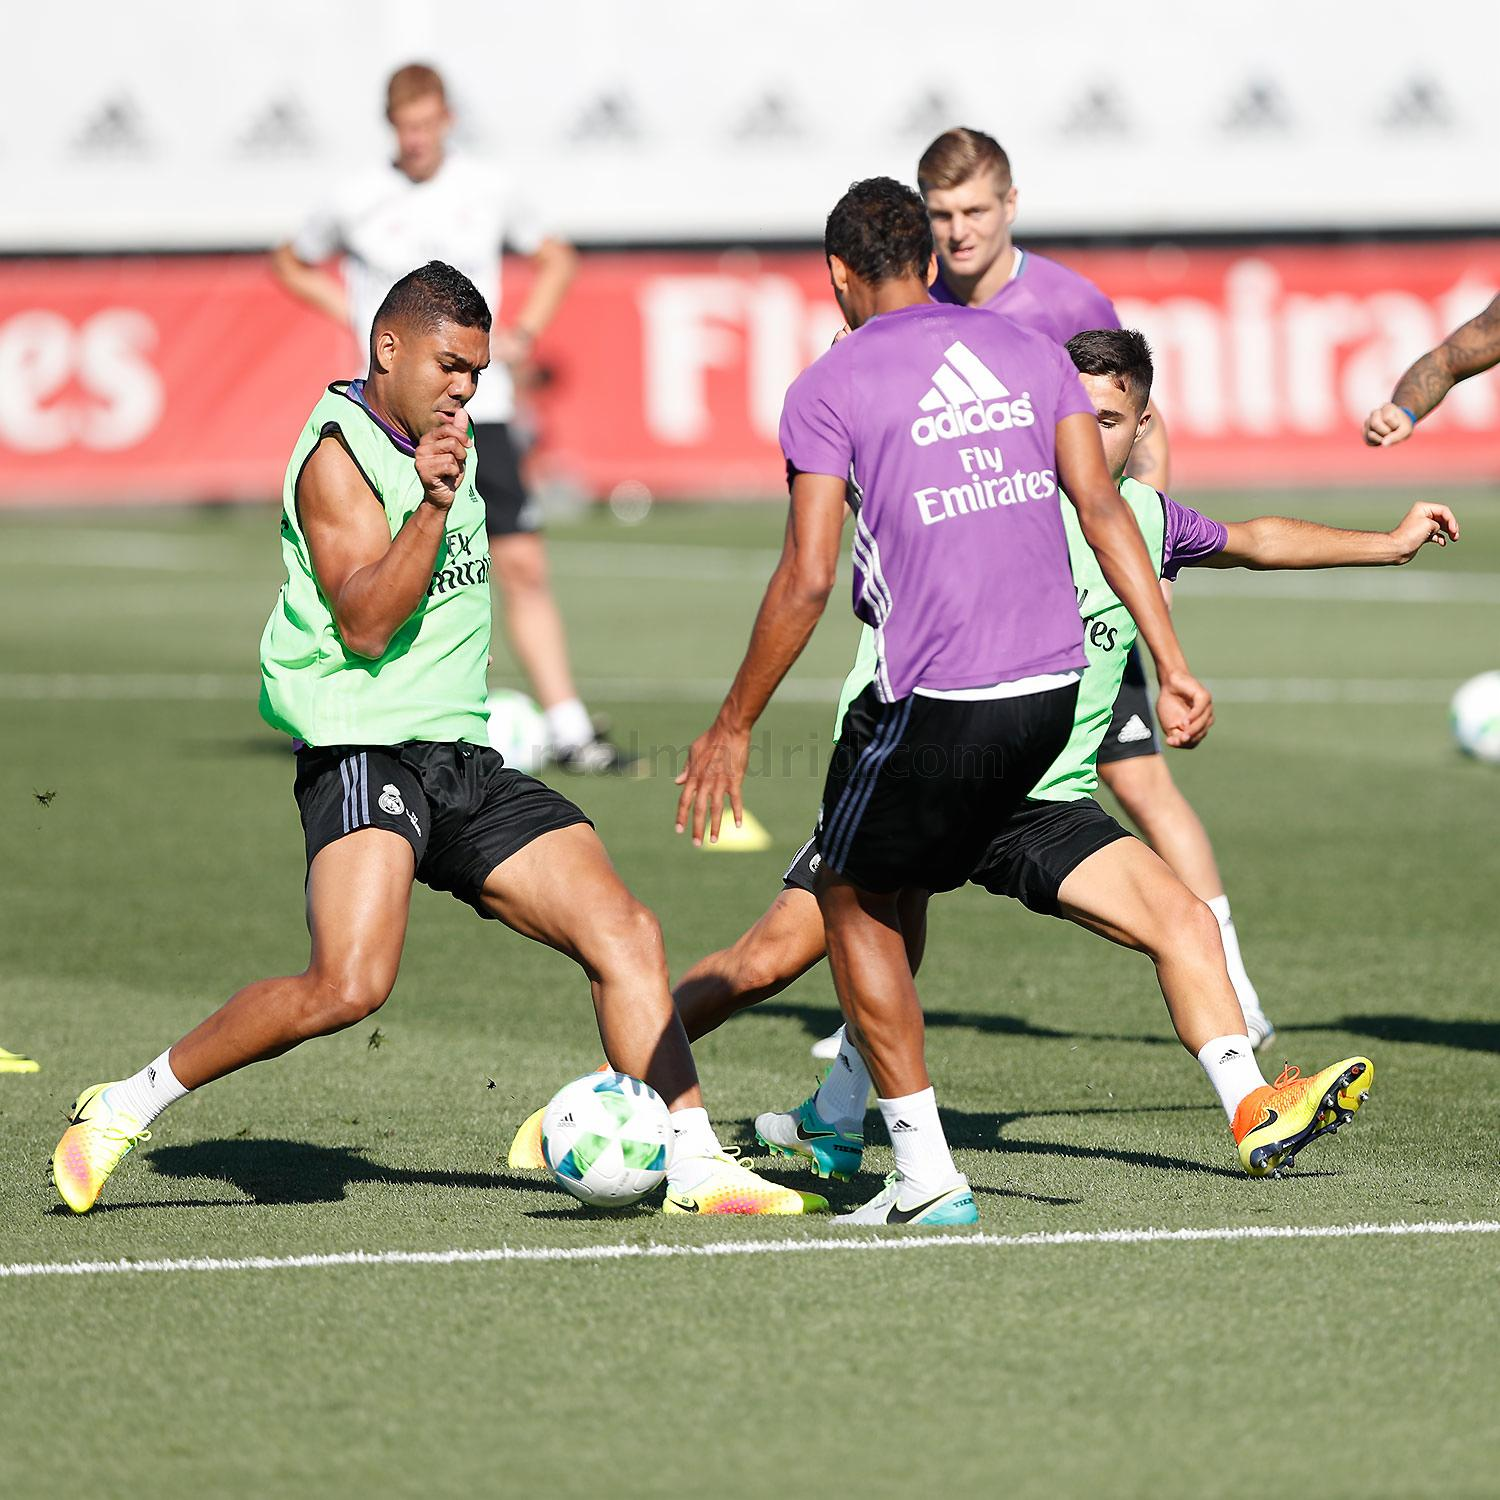 Real Madrid - Entrenamiento del Real Madrid - 07-08-2016